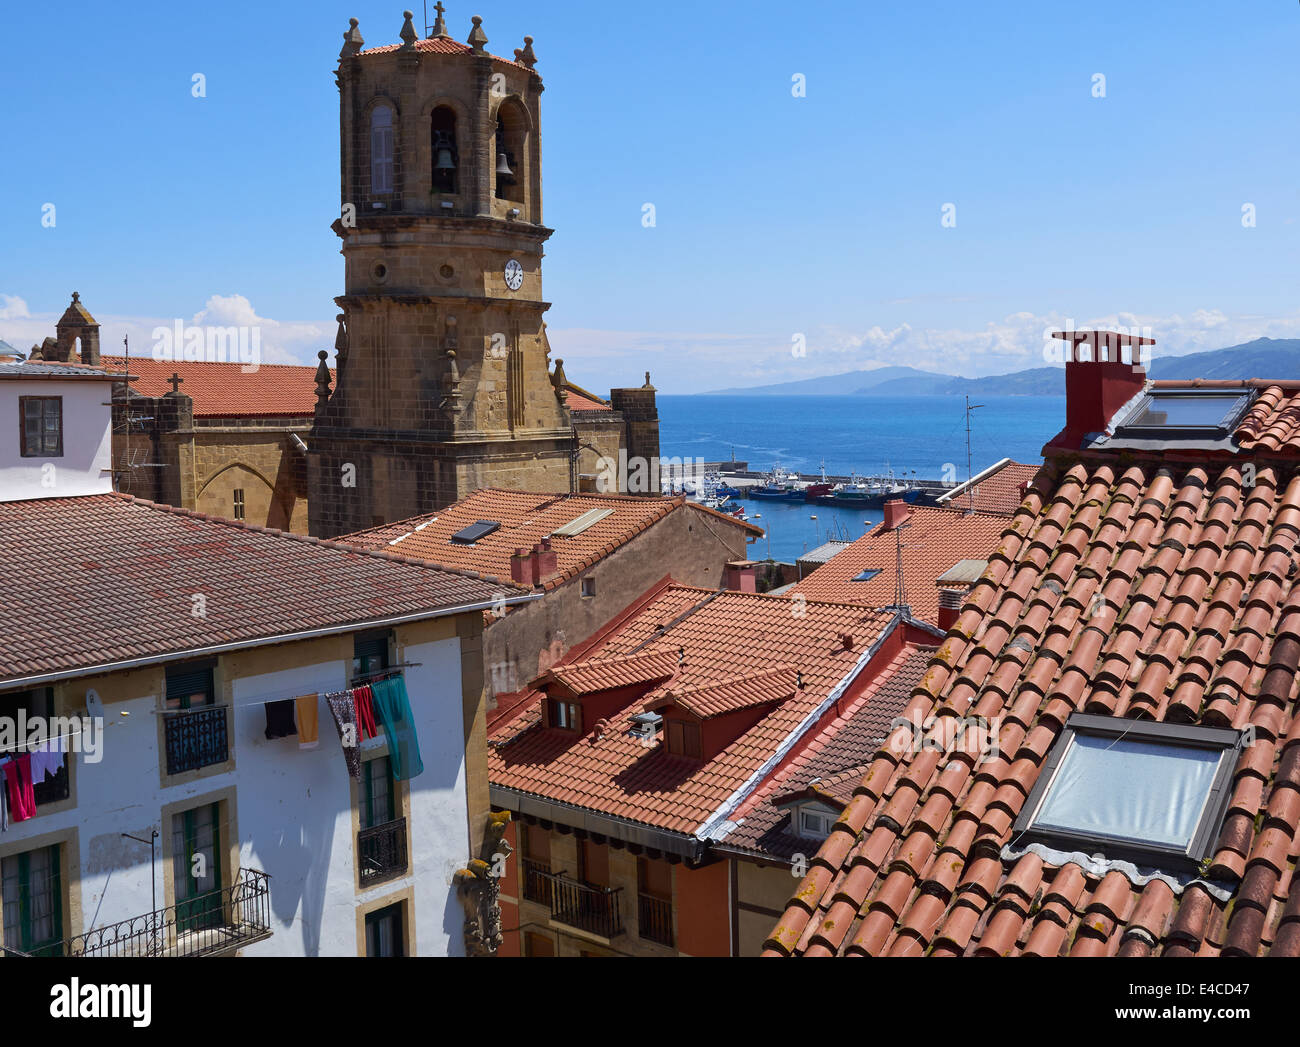 Getaria, Gipuzkoa, Basque Country, Spain. Tiled roofs of the houses of the historic fishing village. - Stock Image